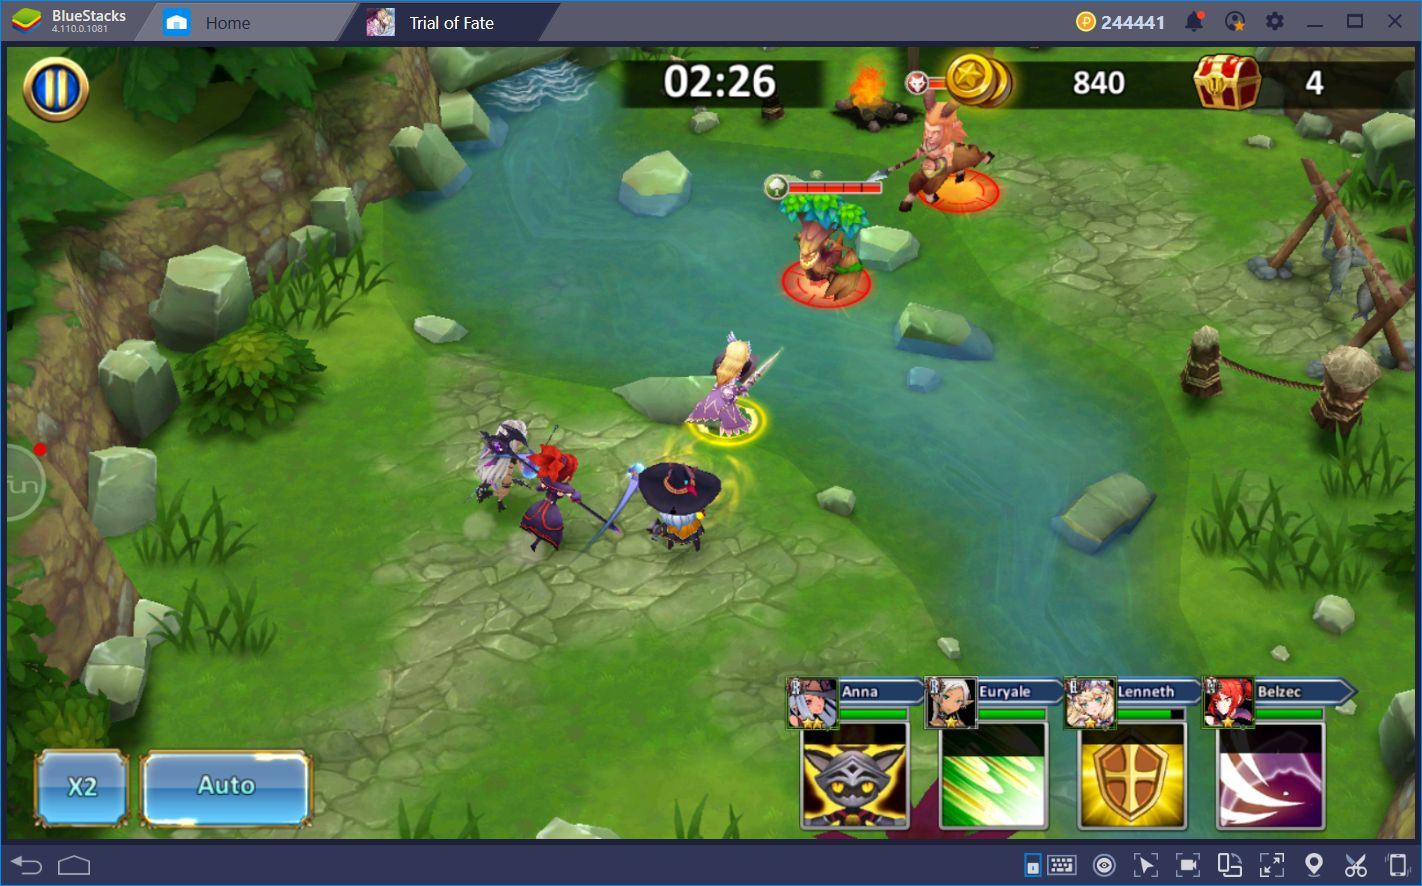 Boost Your Performance and Accelerate Your Progress in Trial of Fate With BlueStacks